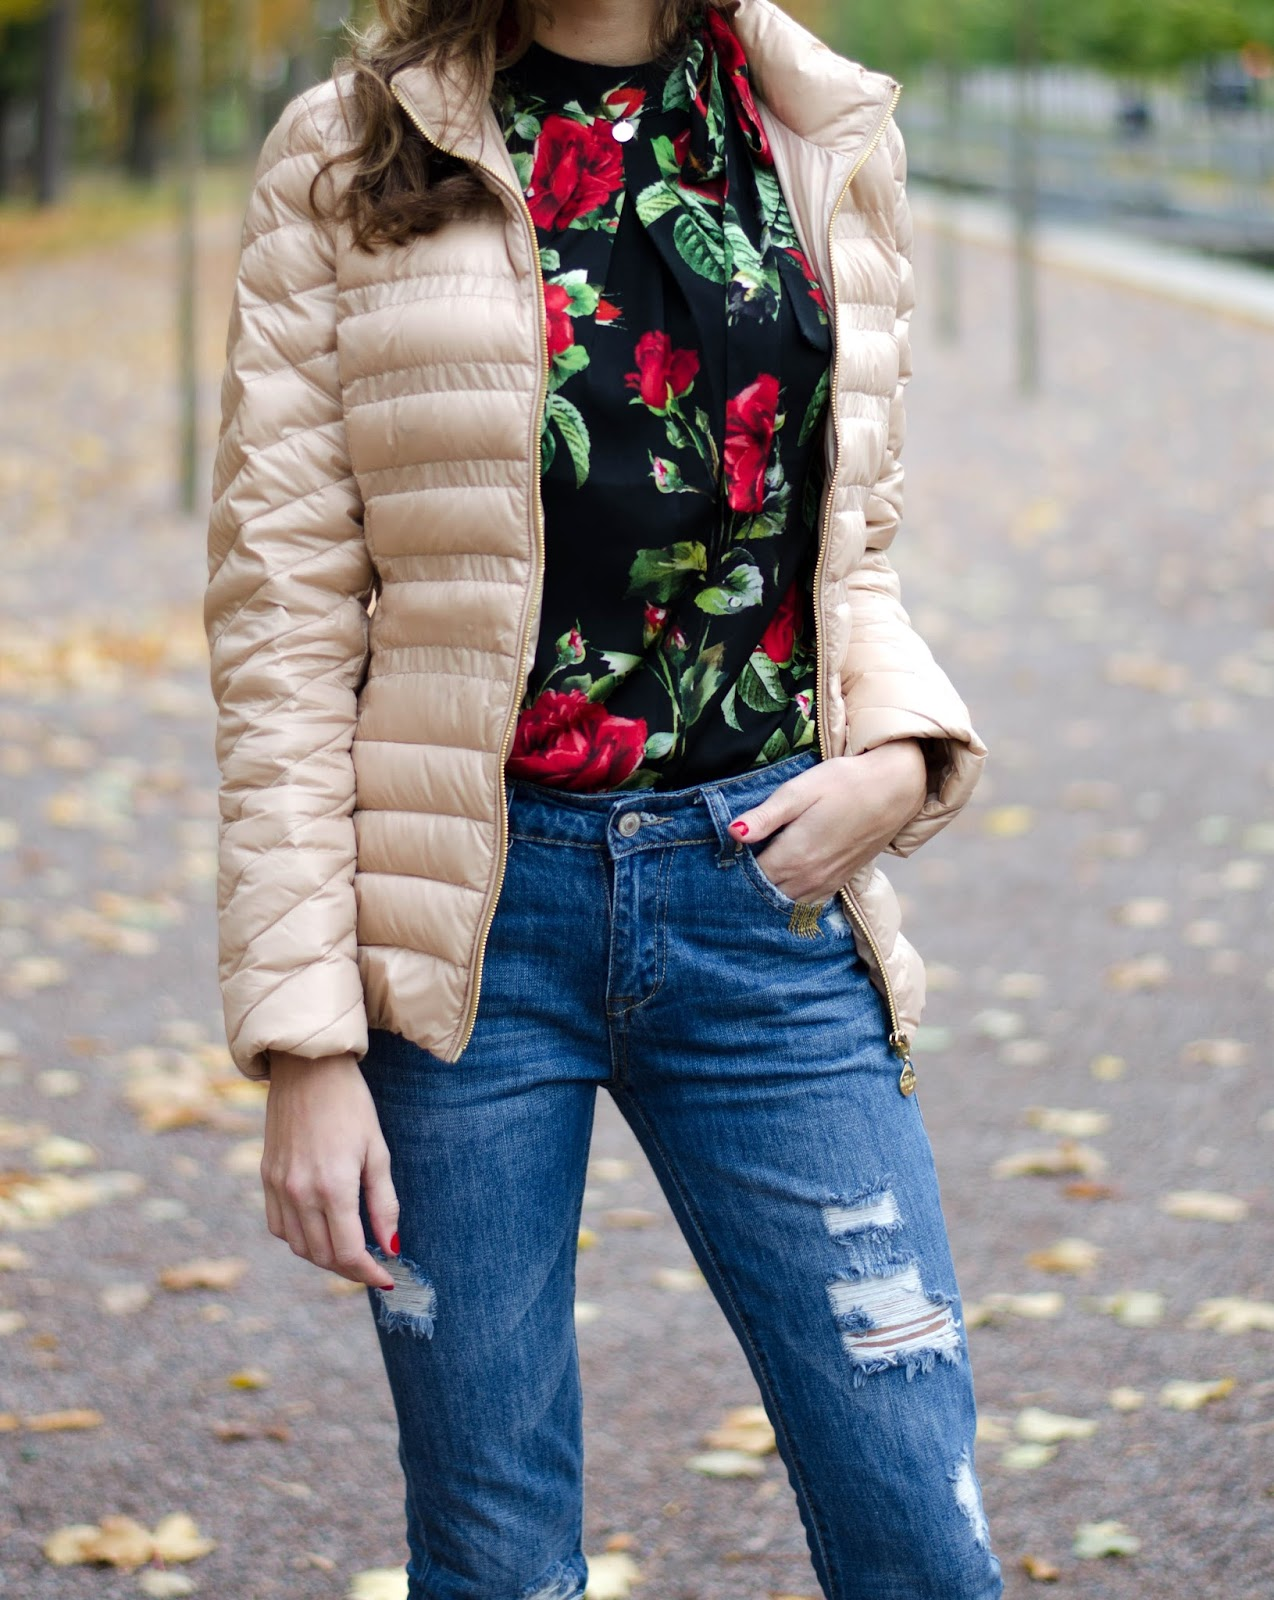 floral print blouse beige puffy jacket outfit